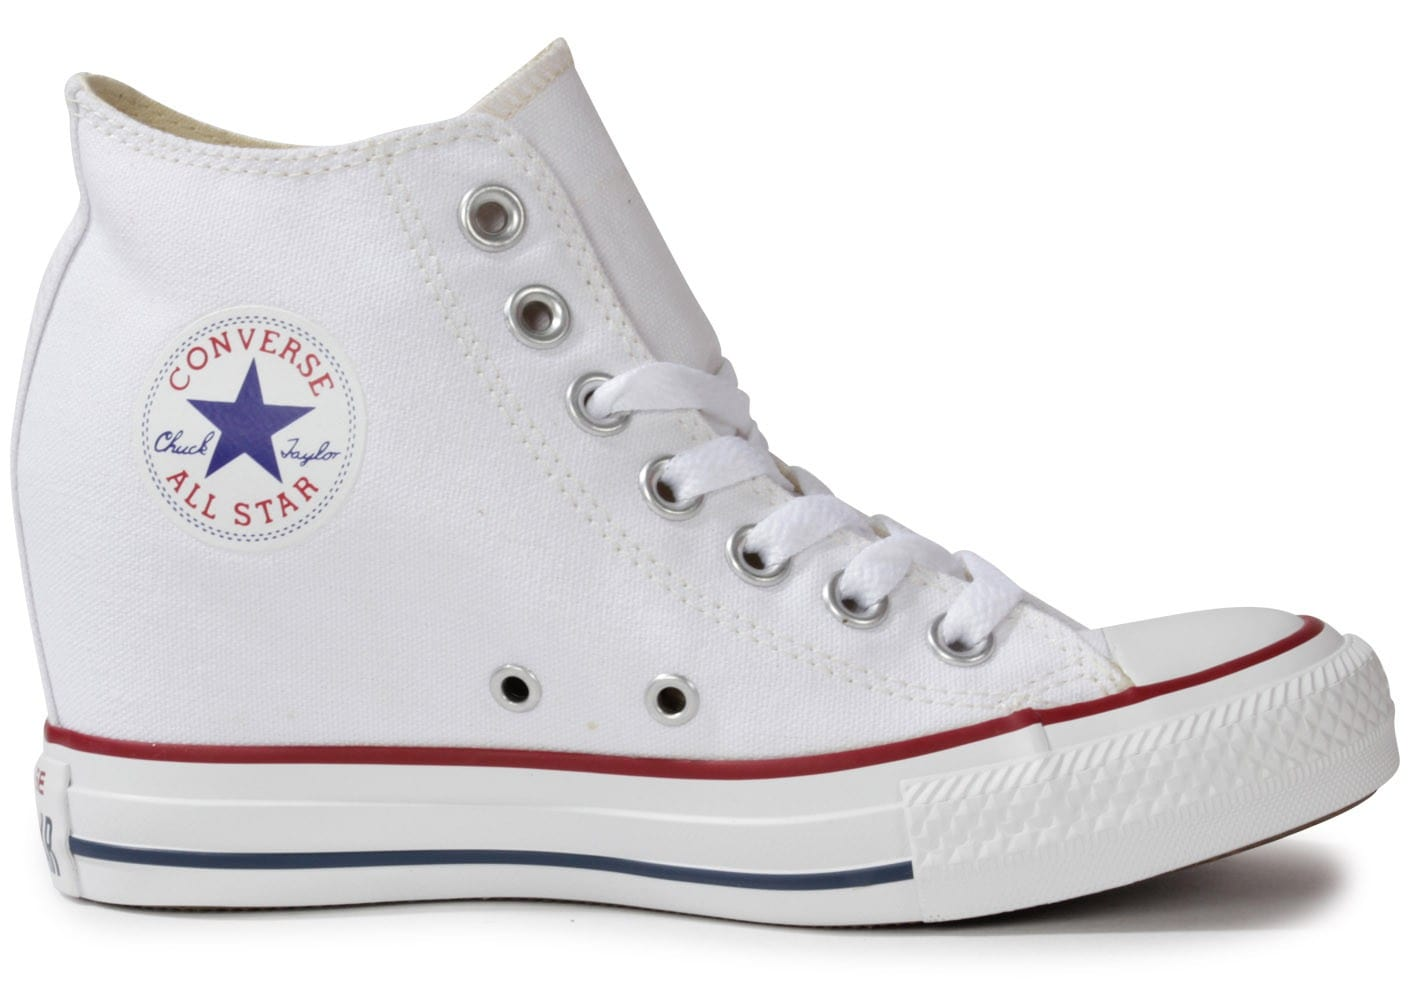 Converse All Star Talon Compensé